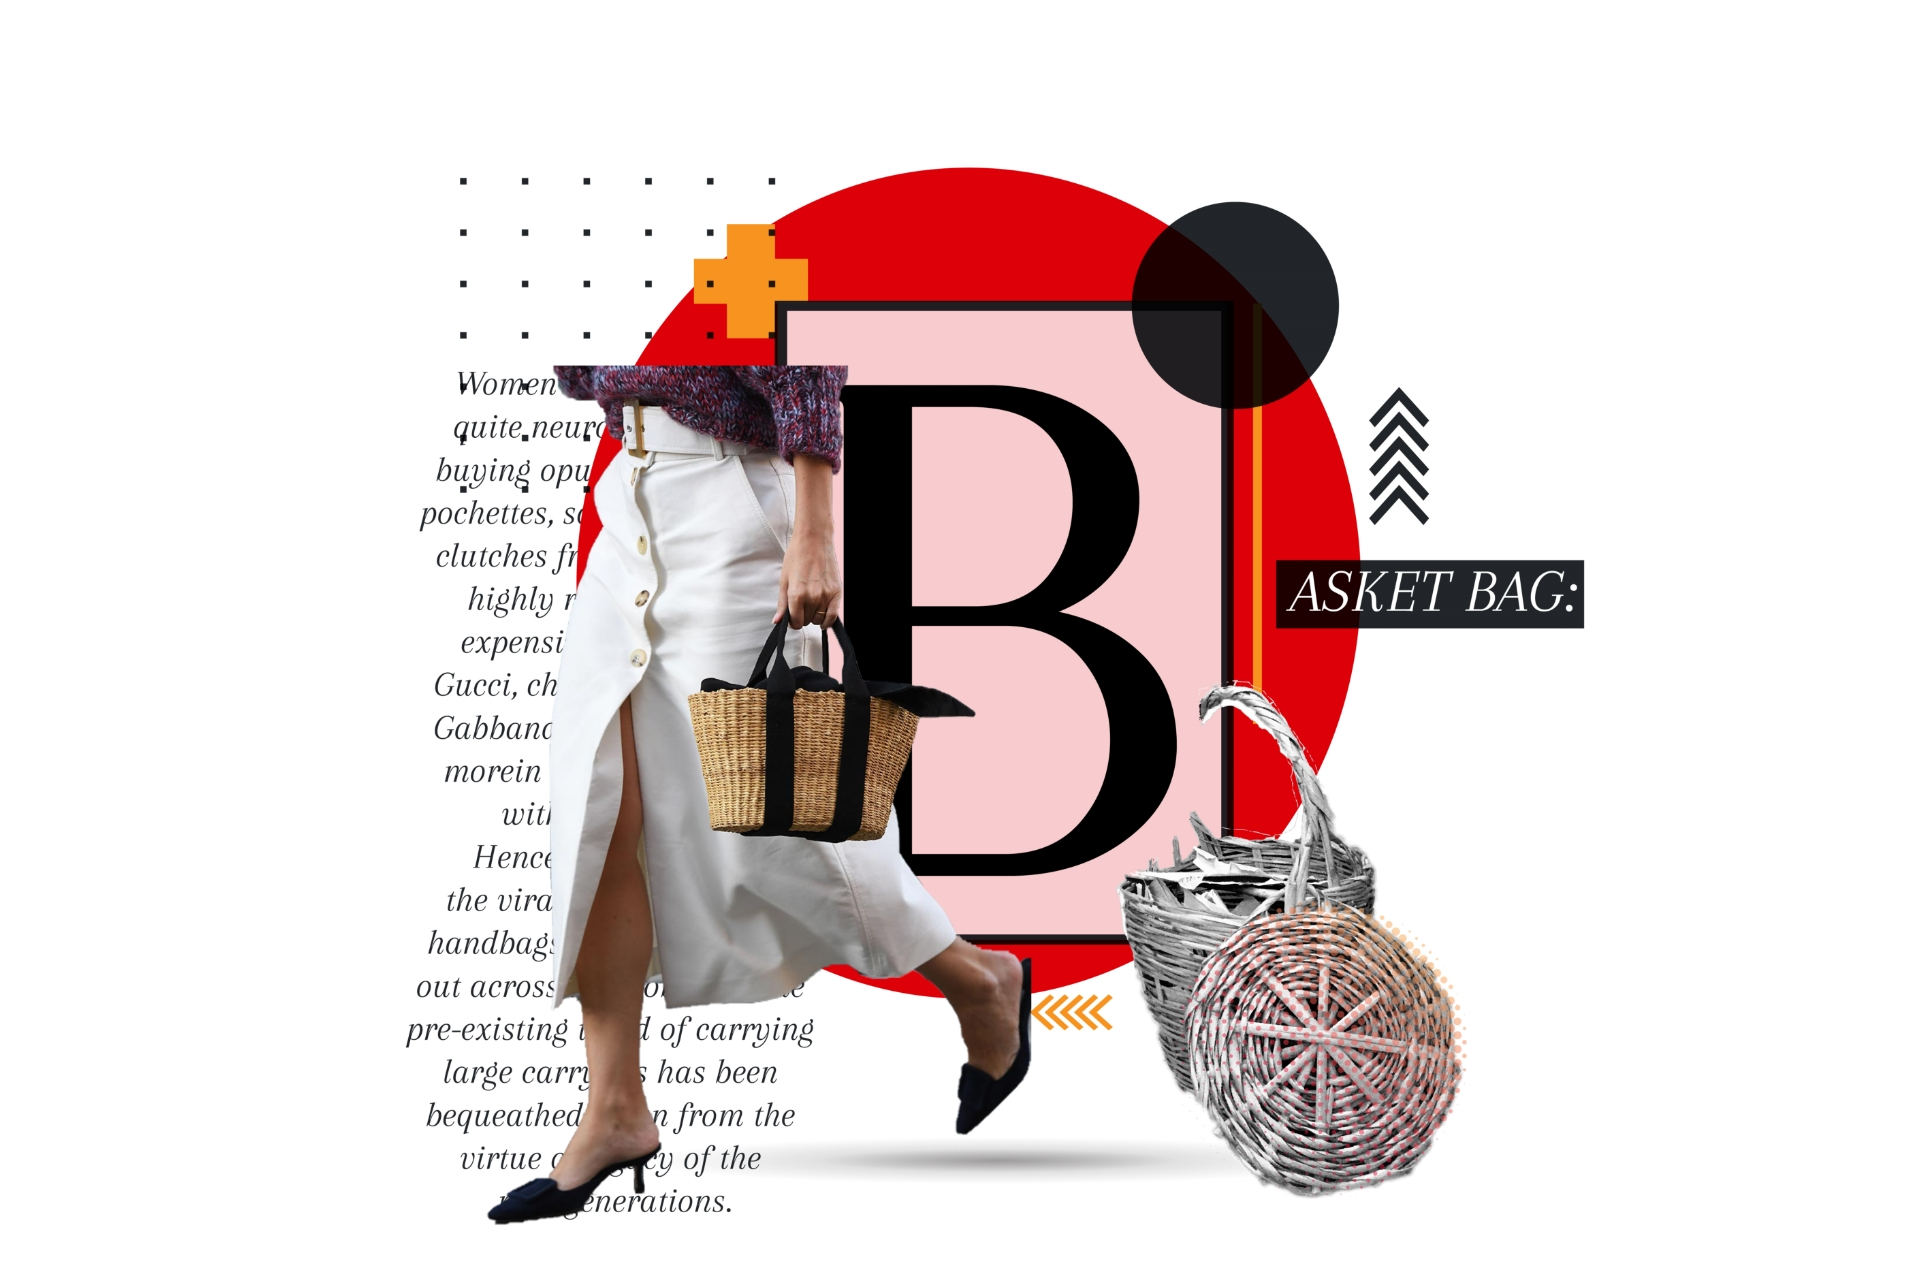 BASKET BAG: toting the trends